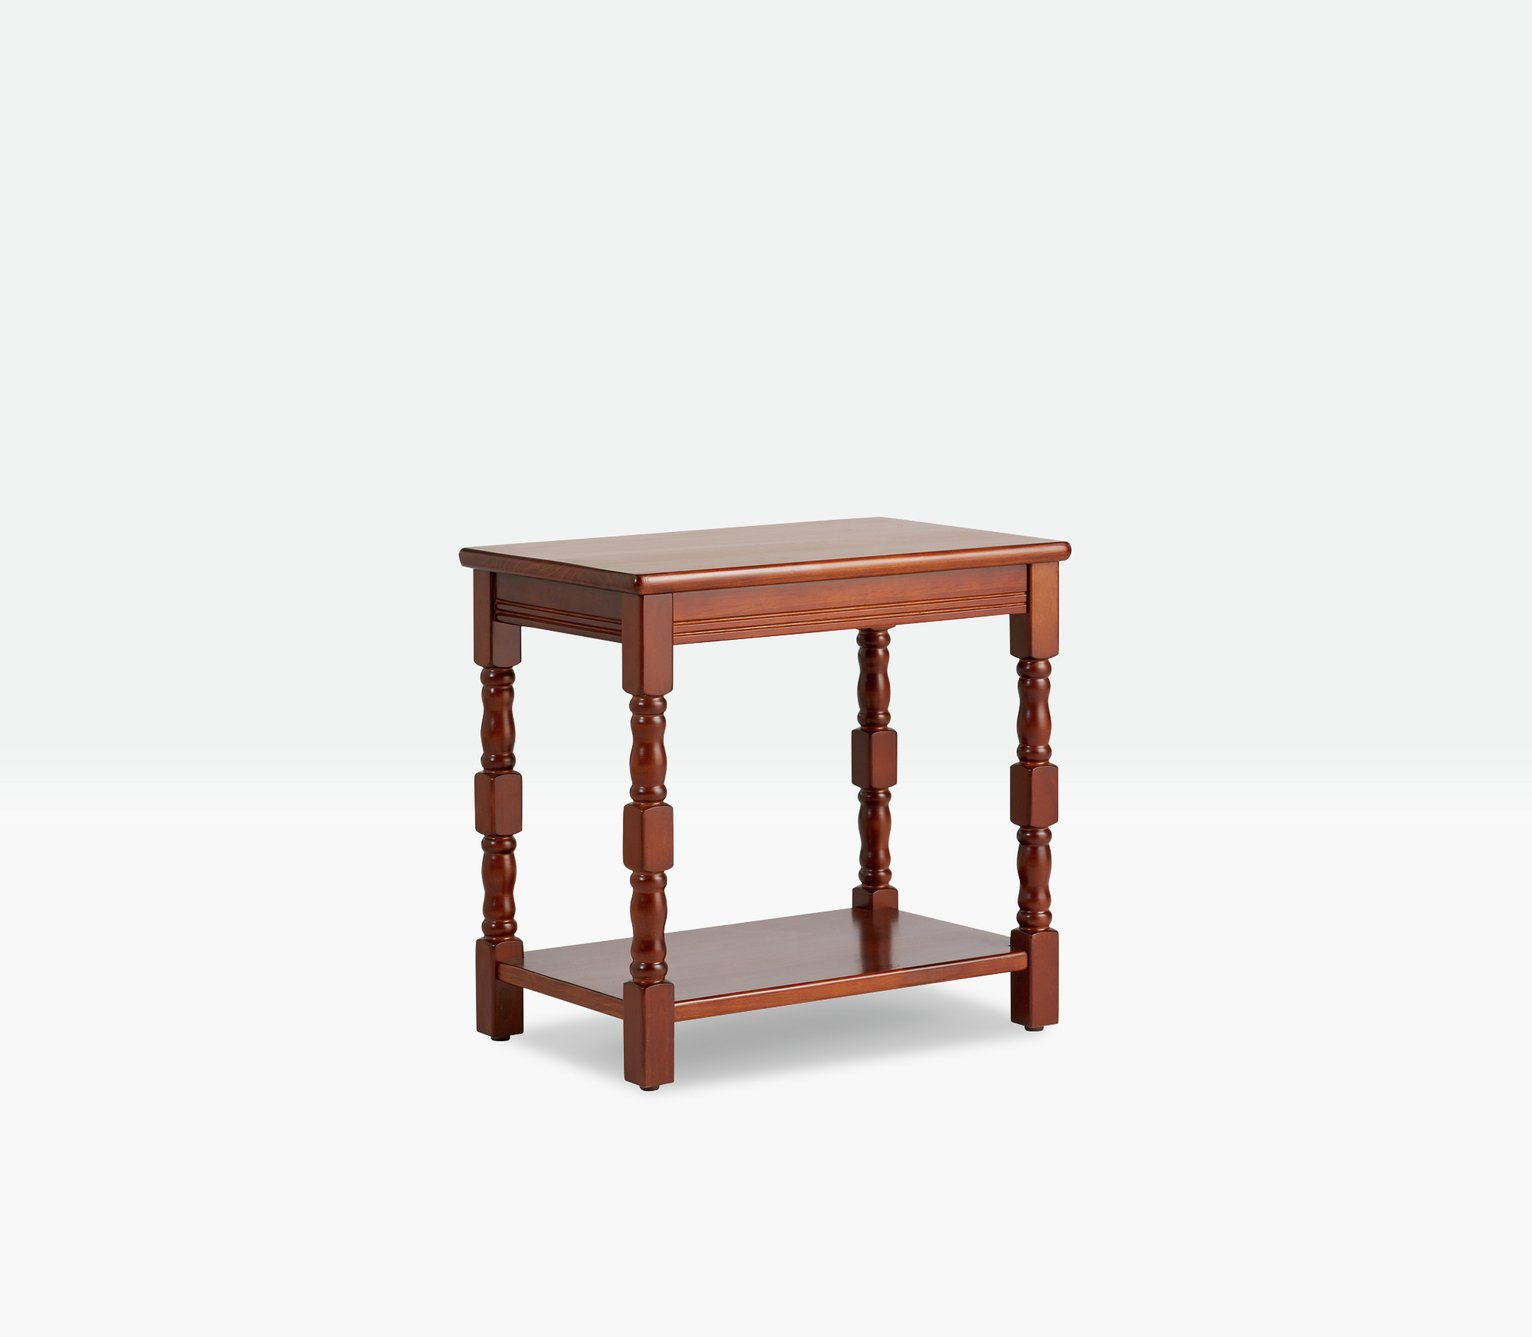 argos home devon solid pine end table walnut effect tracker history nightstand pet the night stand west elm parsons buffet cherry finish accent inch outdoor plywood diy coffee